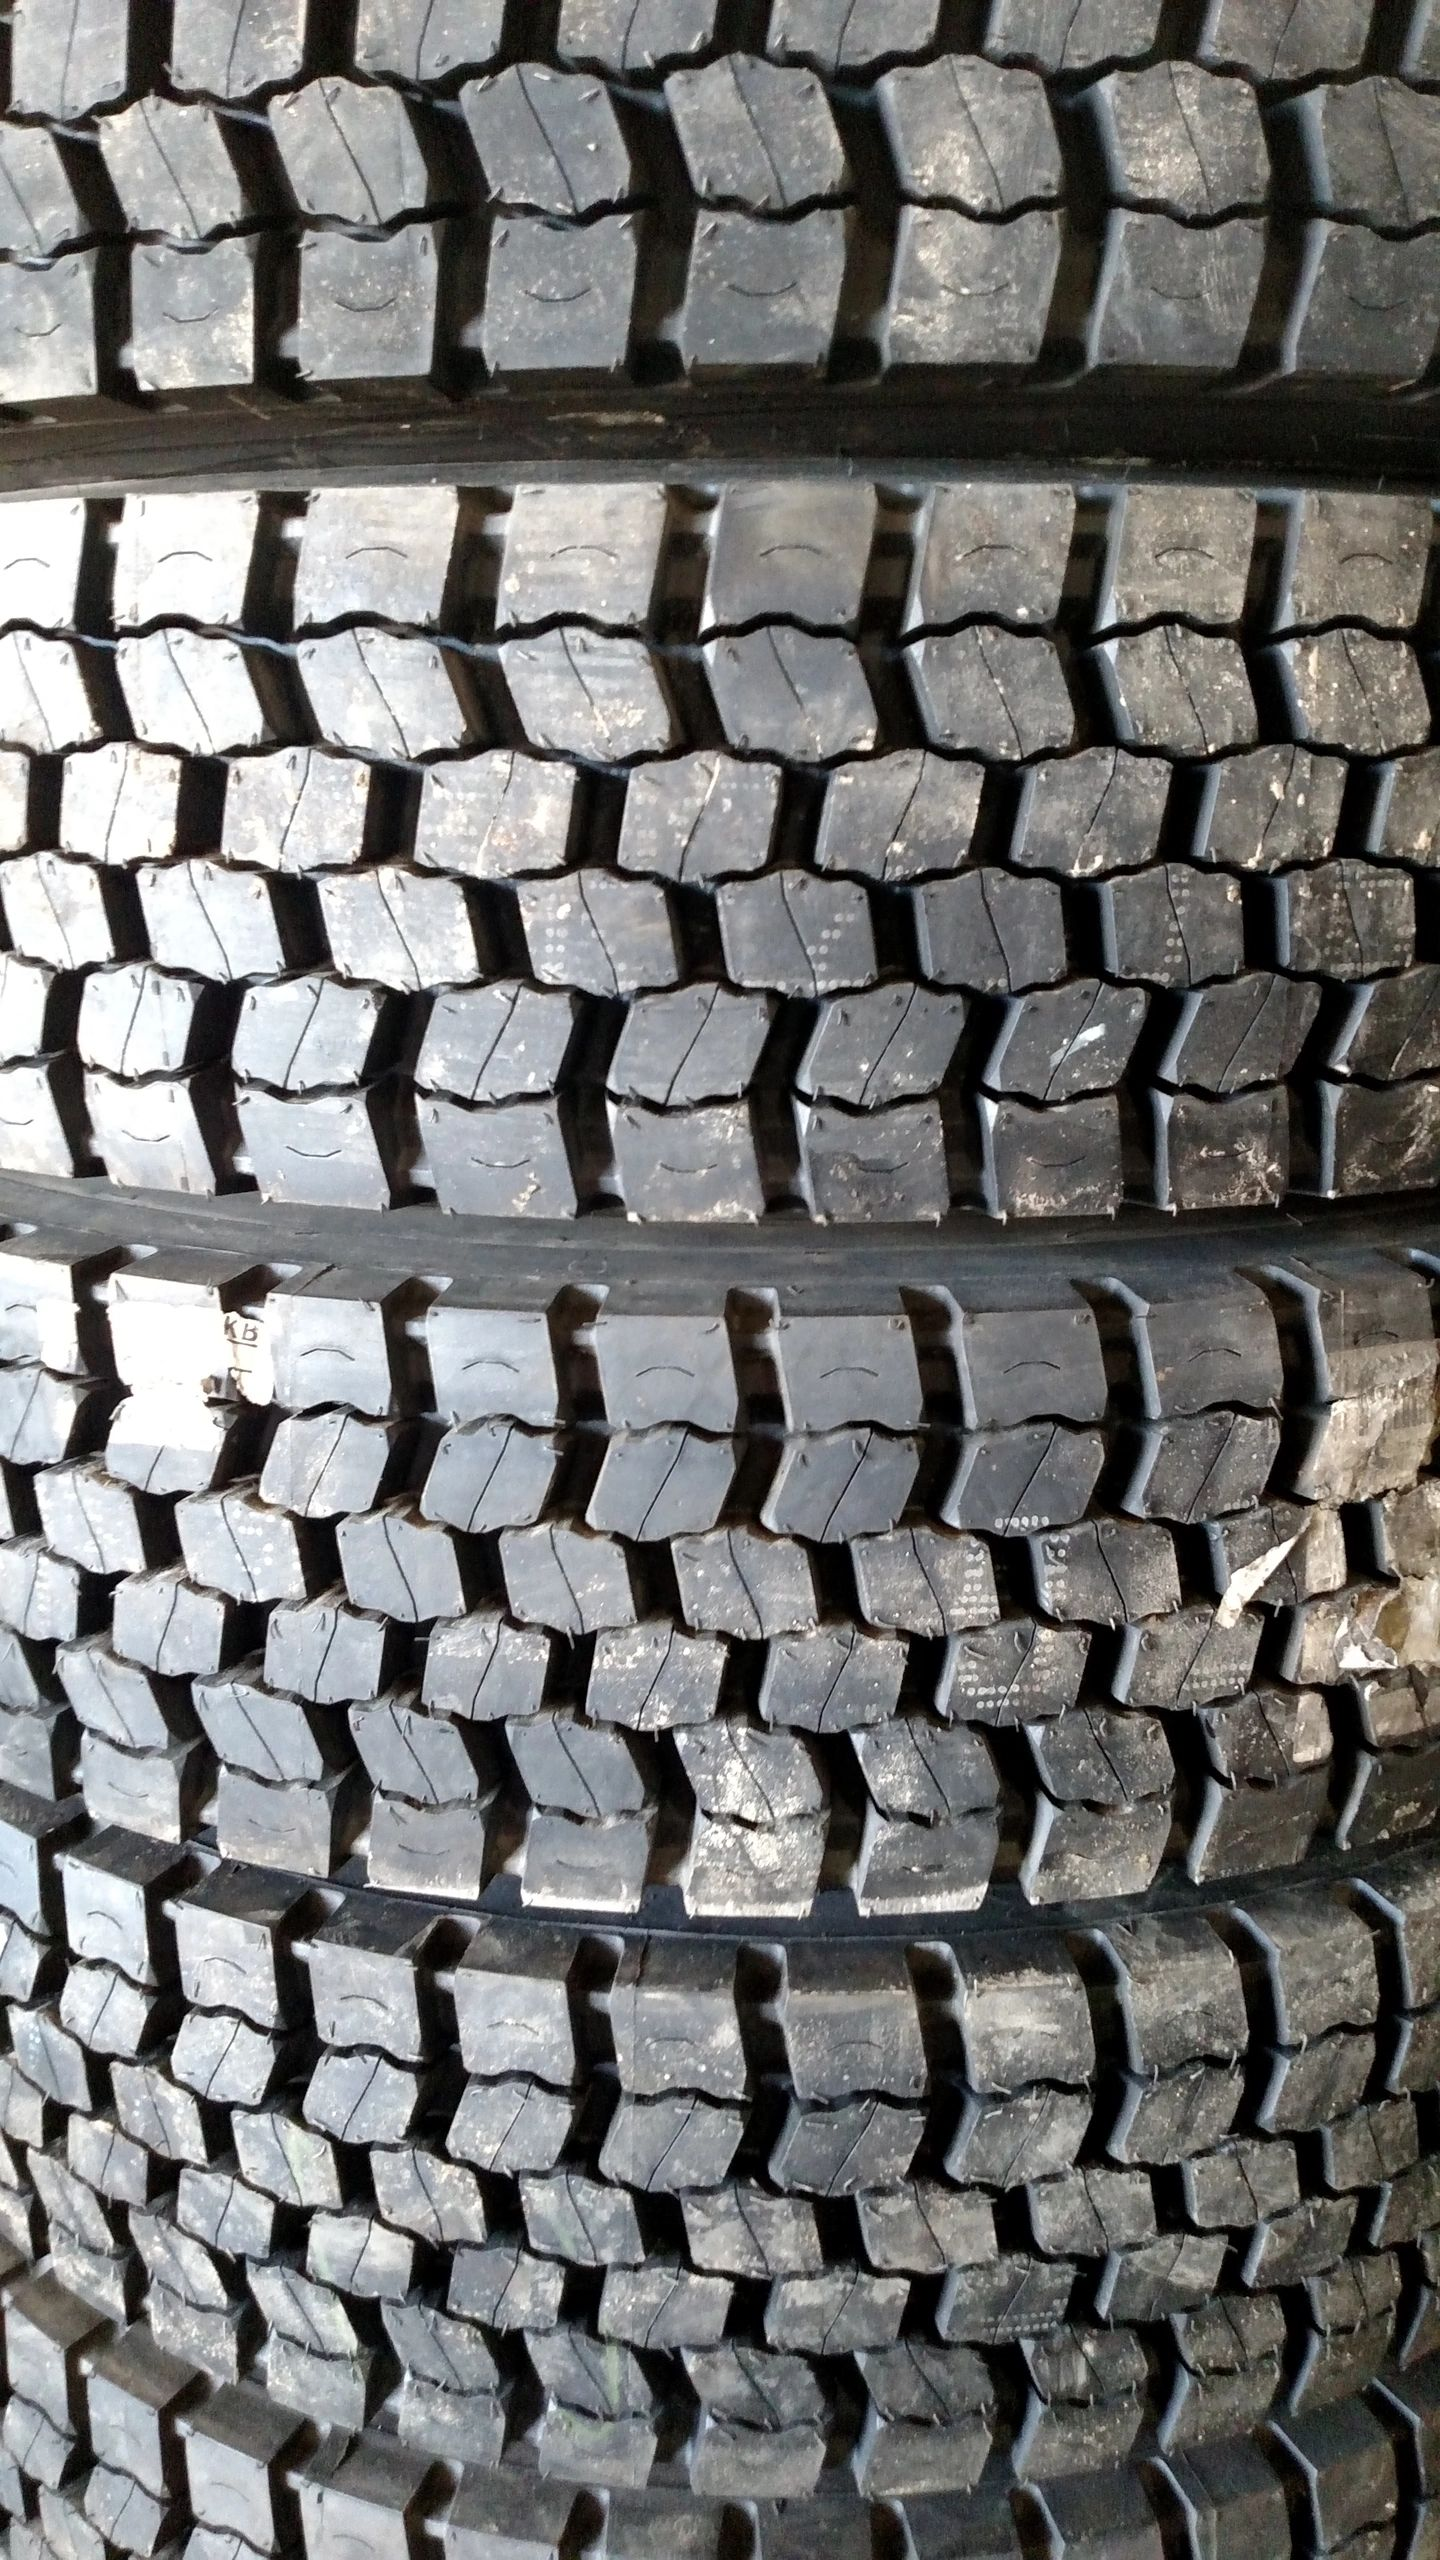 MV Tire Supply - Military Truck Tires, Semi Tires, Tires for